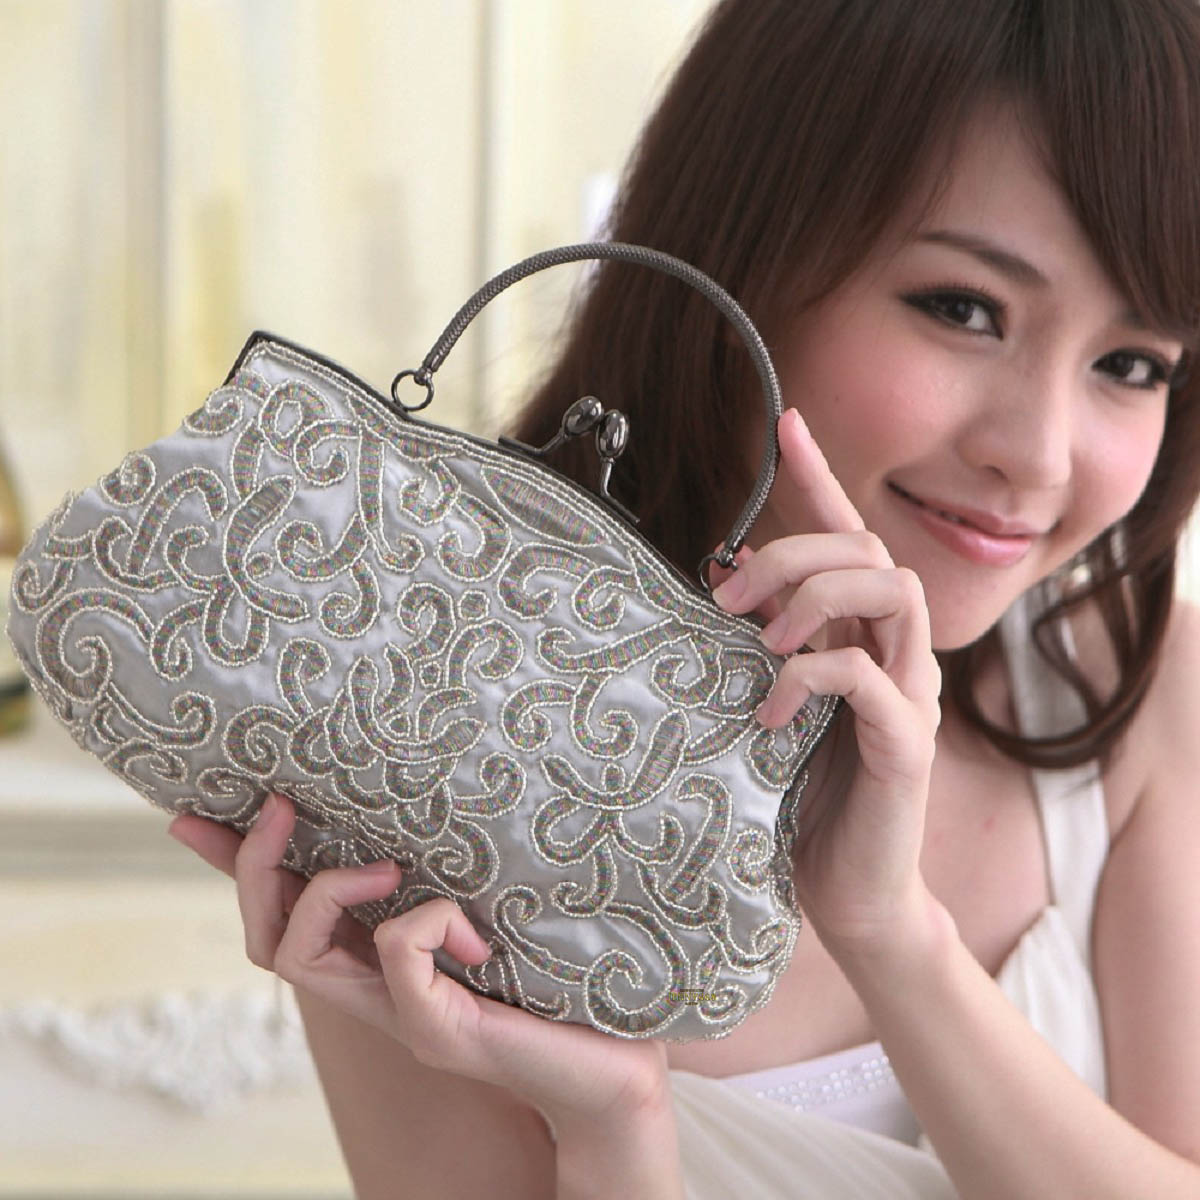 Chinese style handbag female Shanghai beach Xiangyun retro pearl embroidery Bag Silver Dinner Bag evening dress bag cheongsam bag